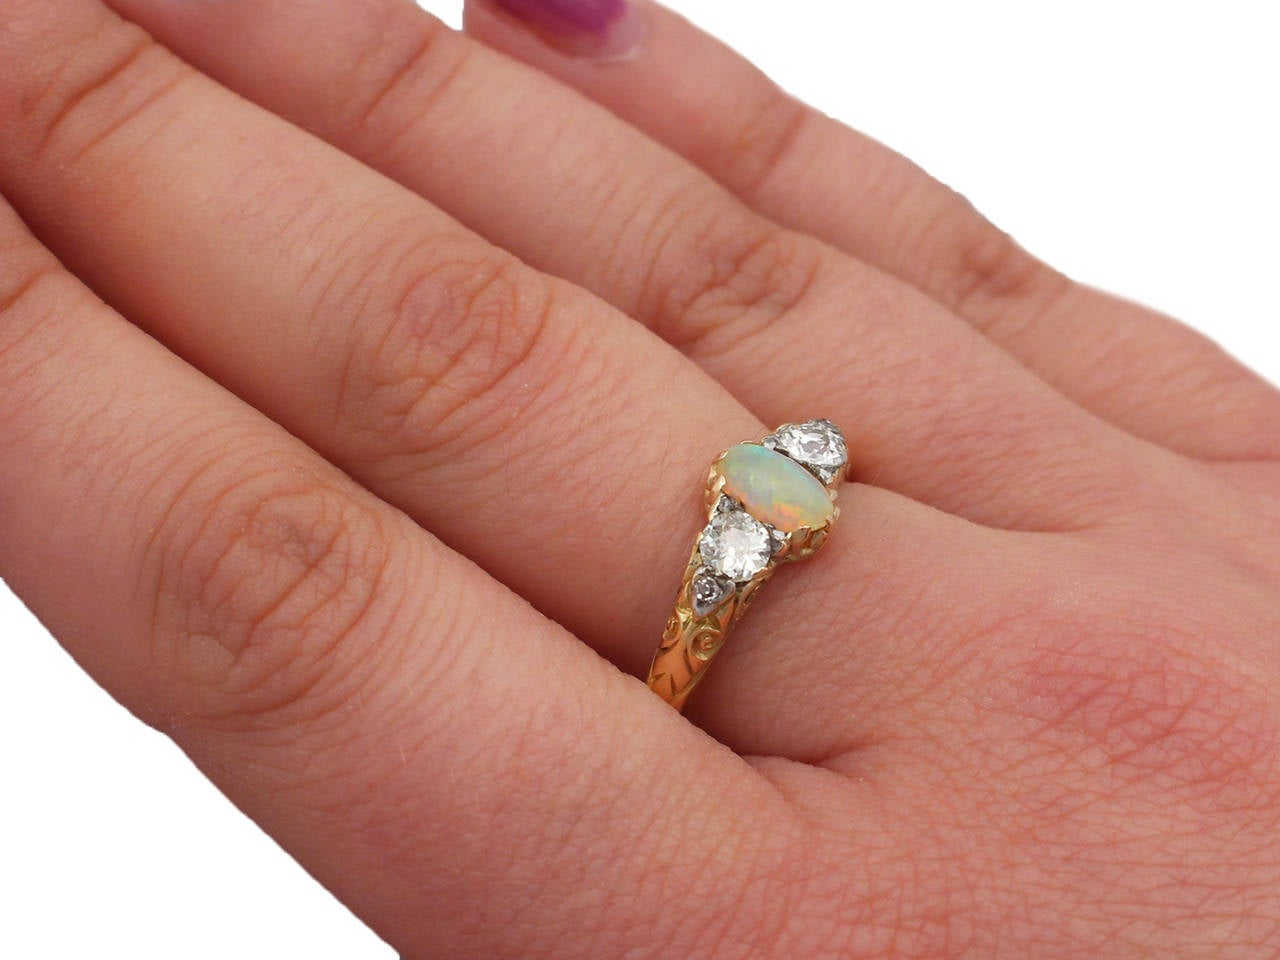 0.48Ct Opal & 0.76Ct Diamond 18k Yellow Gold Trilogy Ring - Antique Victorian 8